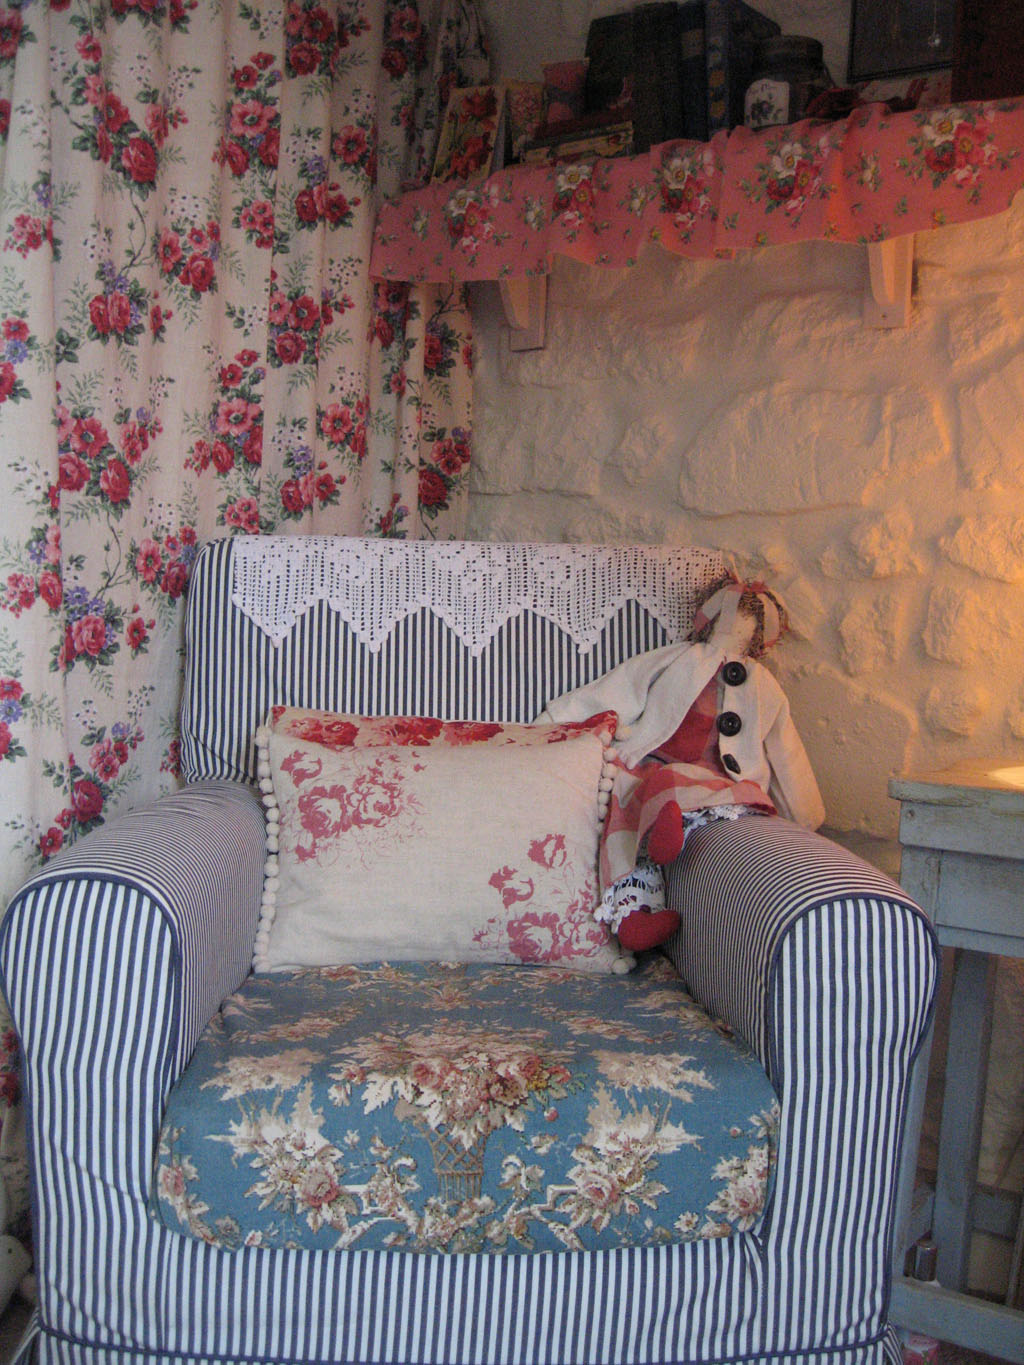 Suzy S Vintage Attic Under The Stair Makeover Completed